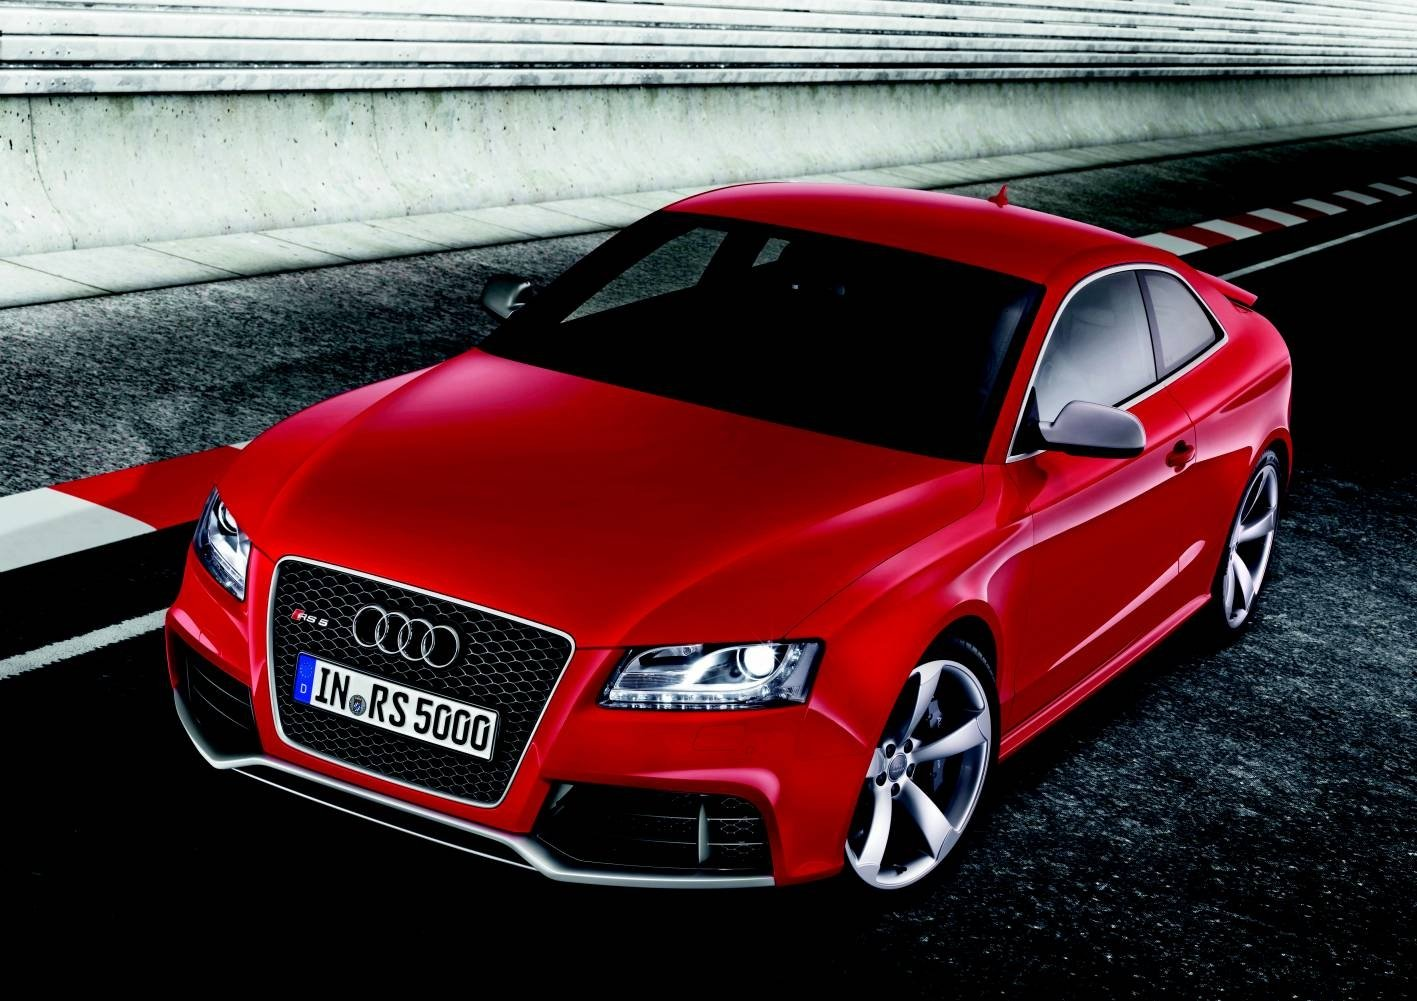 2010 audi rs 5 now available in australia photos 1 of 6. Black Bedroom Furniture Sets. Home Design Ideas